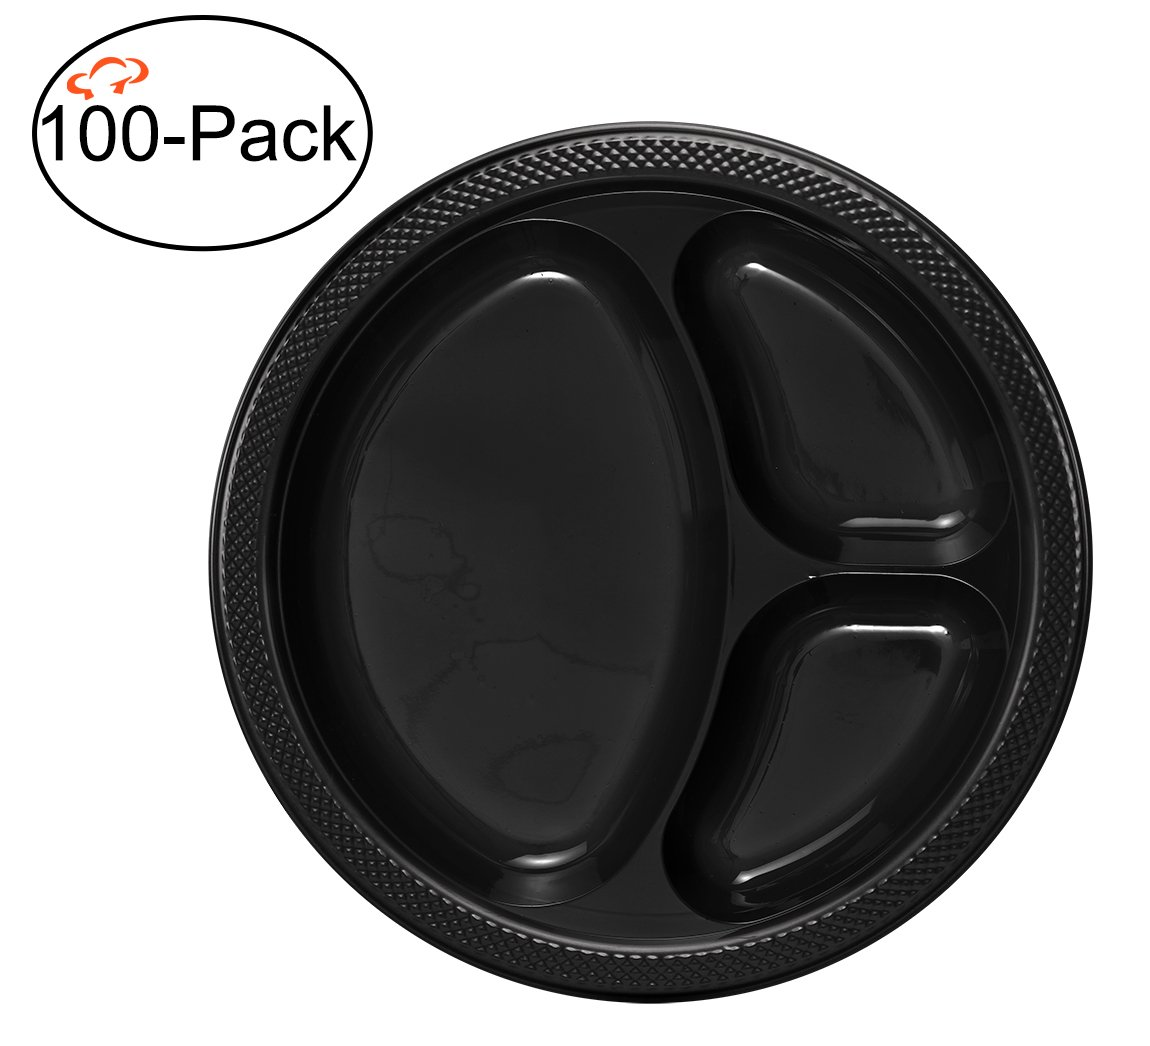 Tiger Chef Round 10 inch Plastic 3 Compartment Divided Plates, 100-Pack, Black, Disposable Dinner Picnic Party Plates Set, BPA-Free